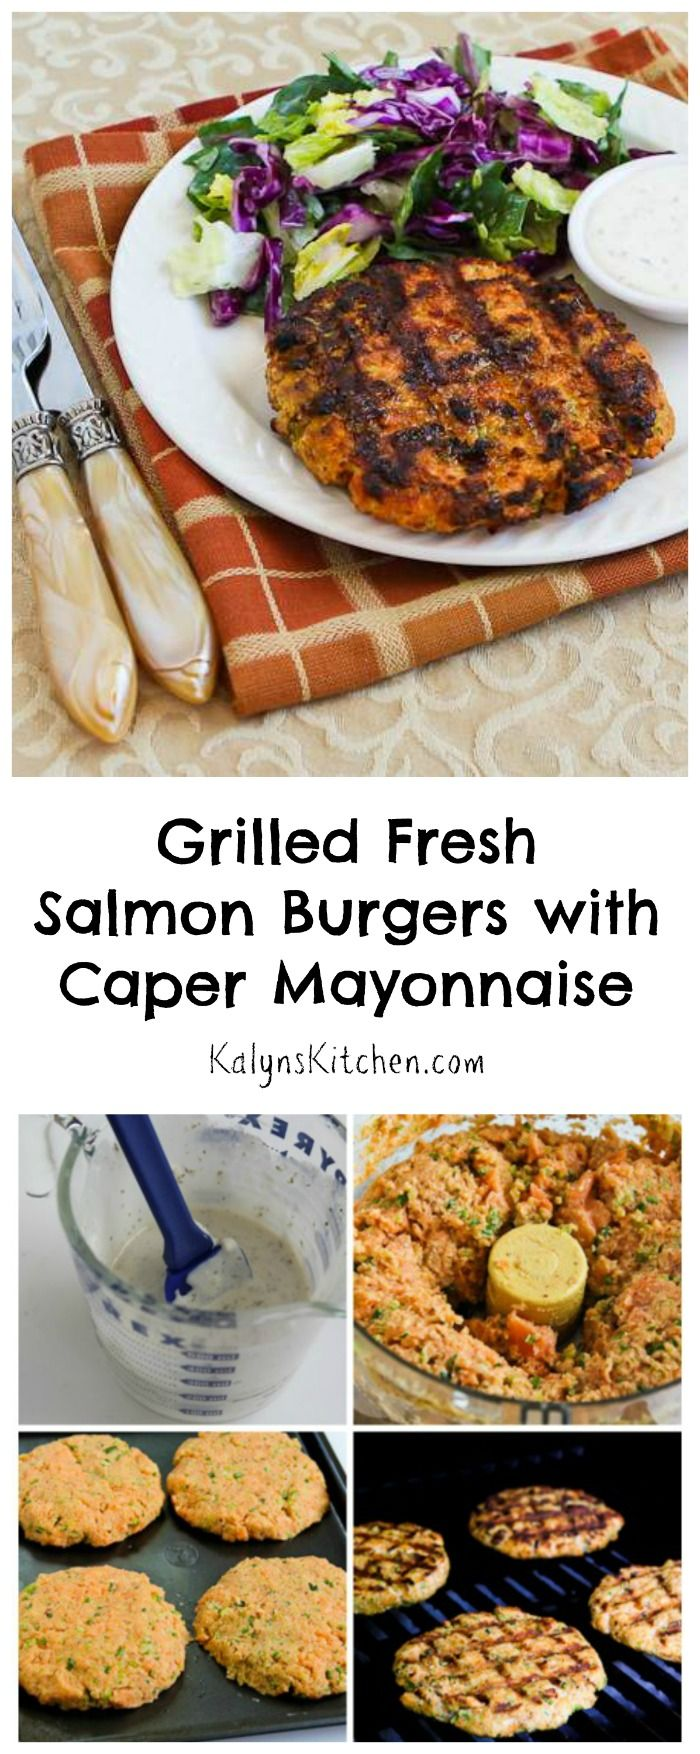 Grilled Fresh Salmon Burgers with Caper Mayonnaise are a new healthier ...